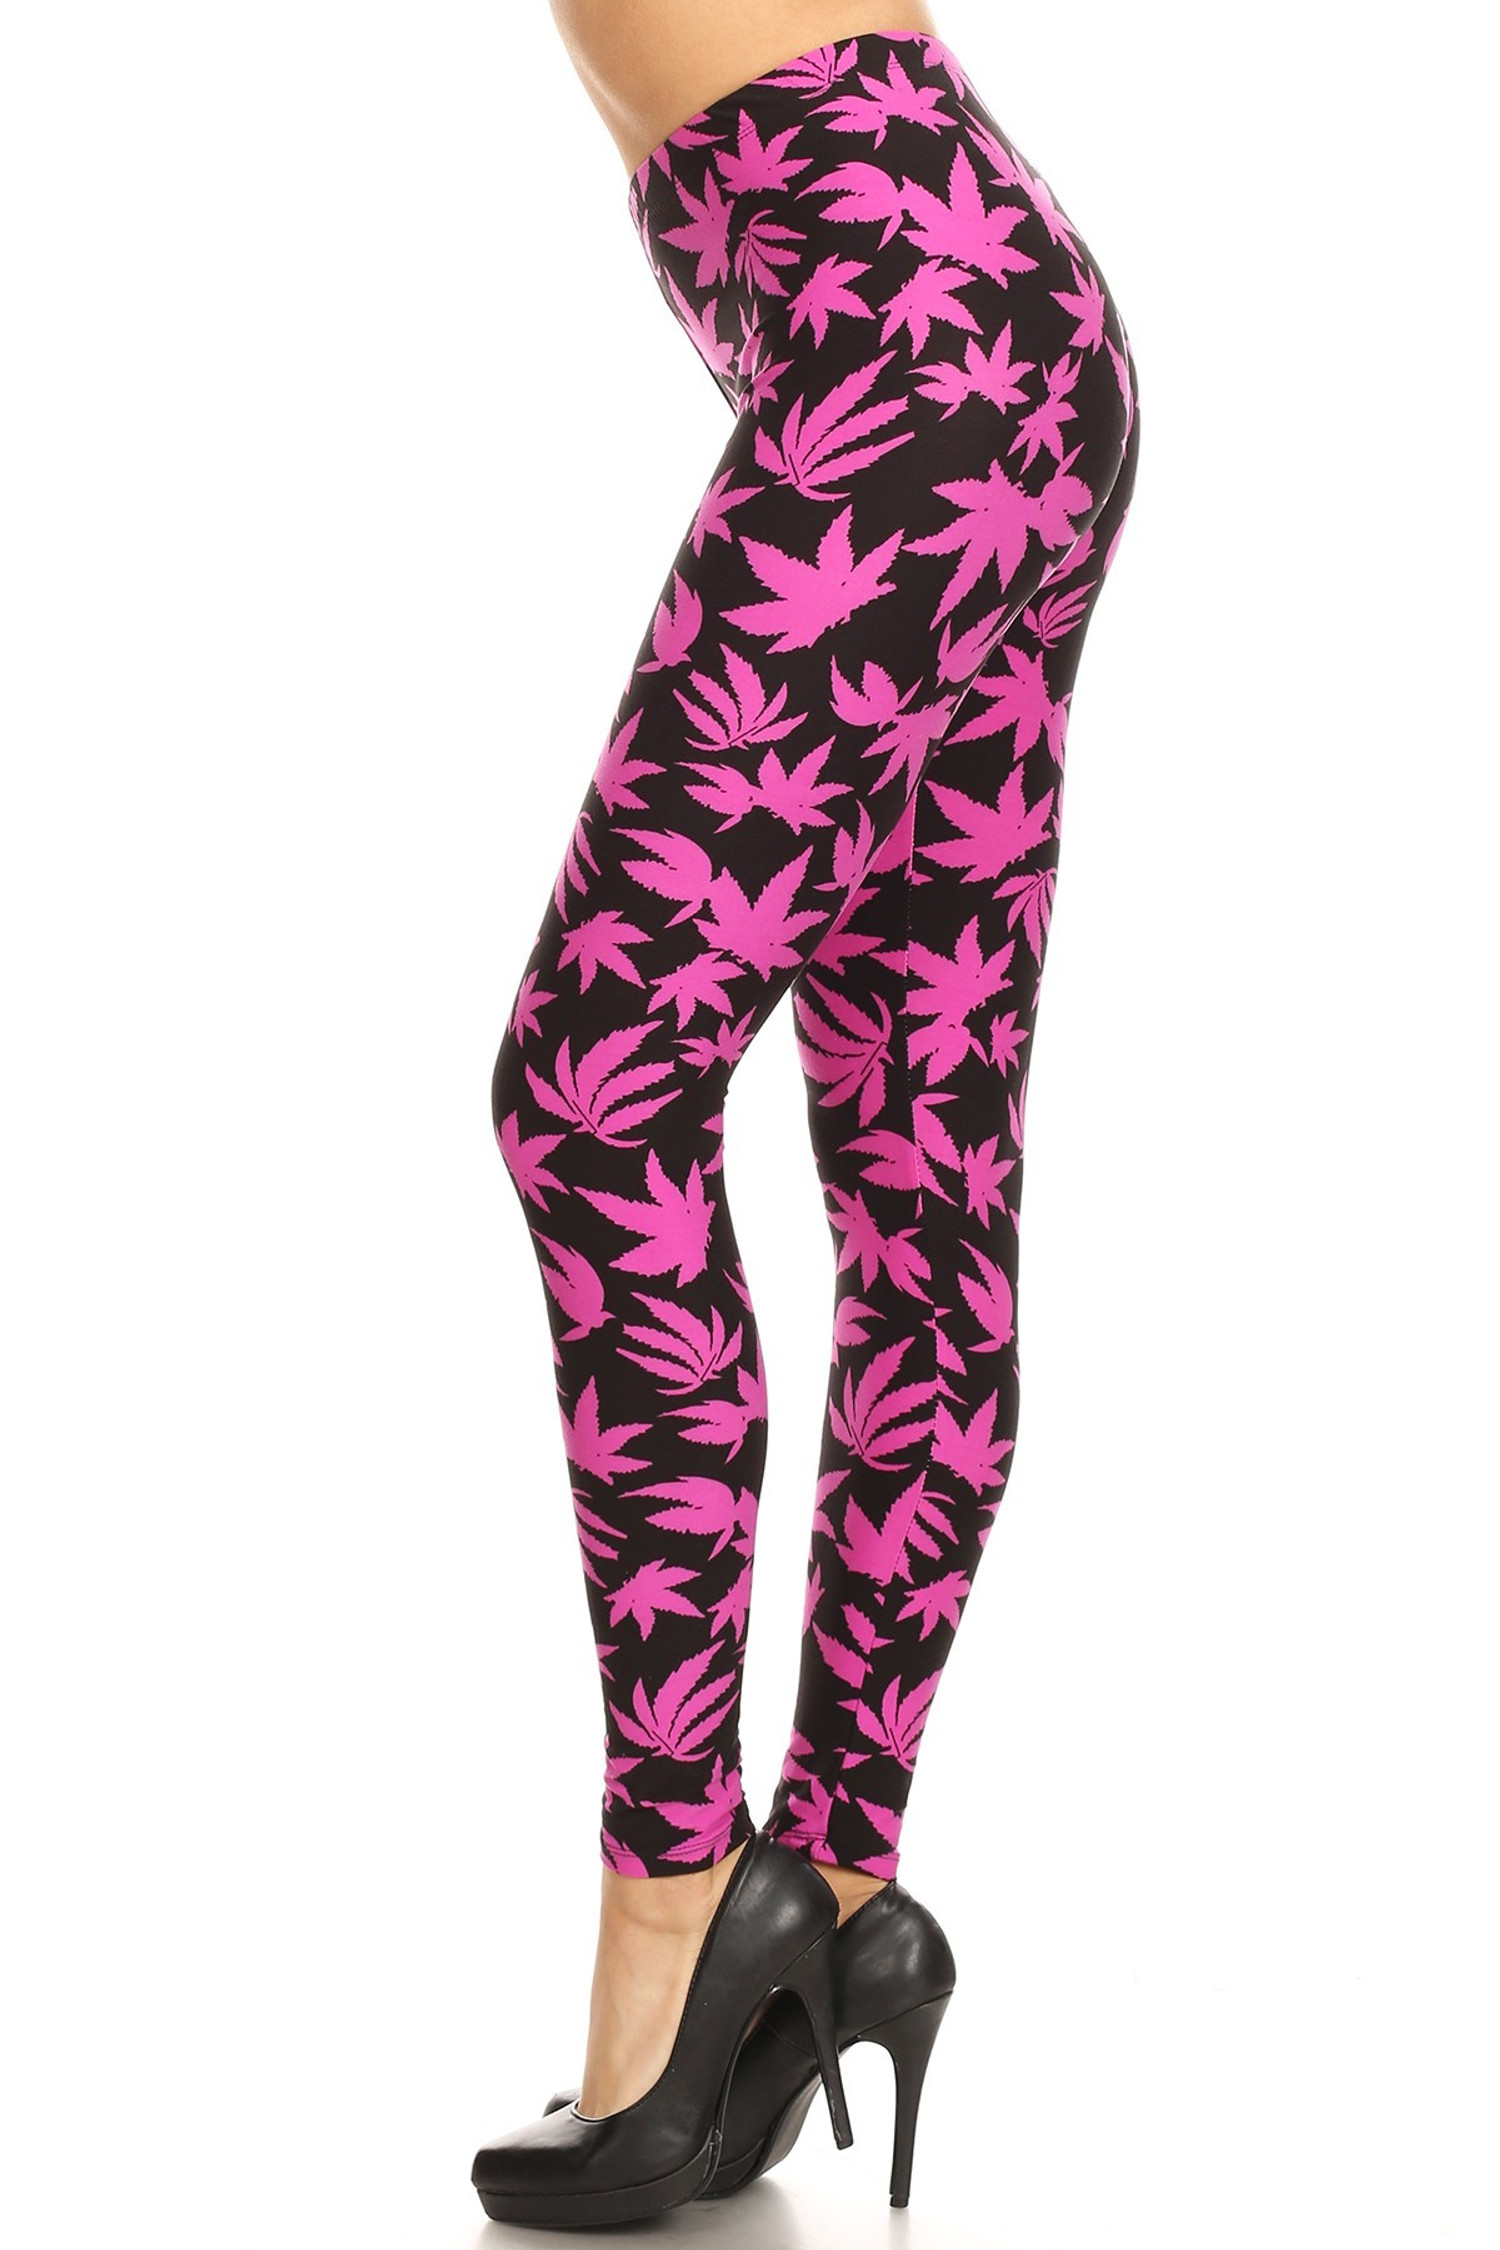 Soft Brushed Solid Fuchsia Marijuana Leggings